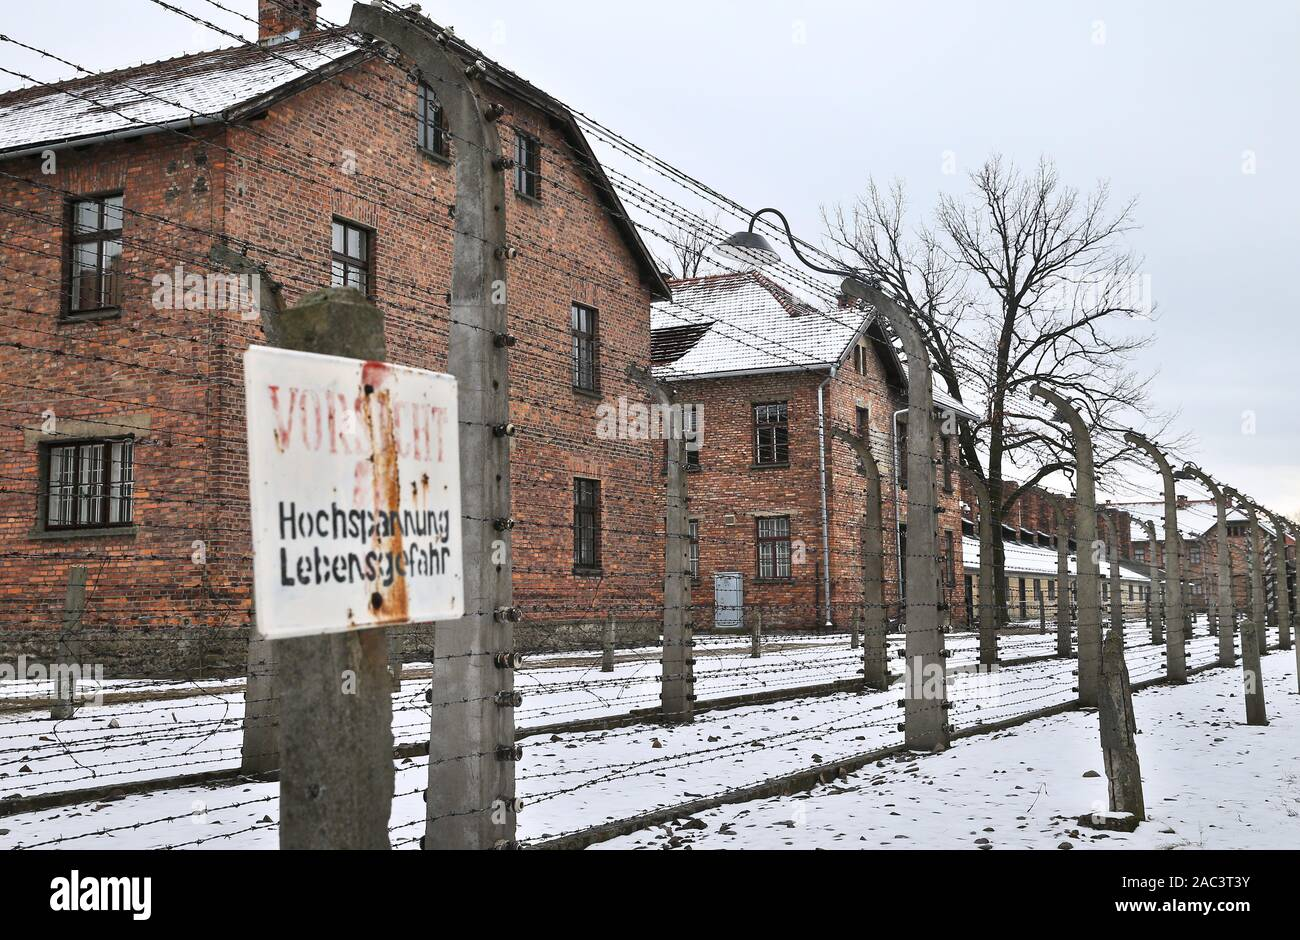 A view on the former Nazi-German concentration and extermination camp Auschwitz. In two months, the 75th anniversary of the liberation of Auschwitz. The biggest German Nazi concentration and extermination camp KL Auschwitz-Birkenau was liberated by the Red Army on 27 January 1945. Stock Photo